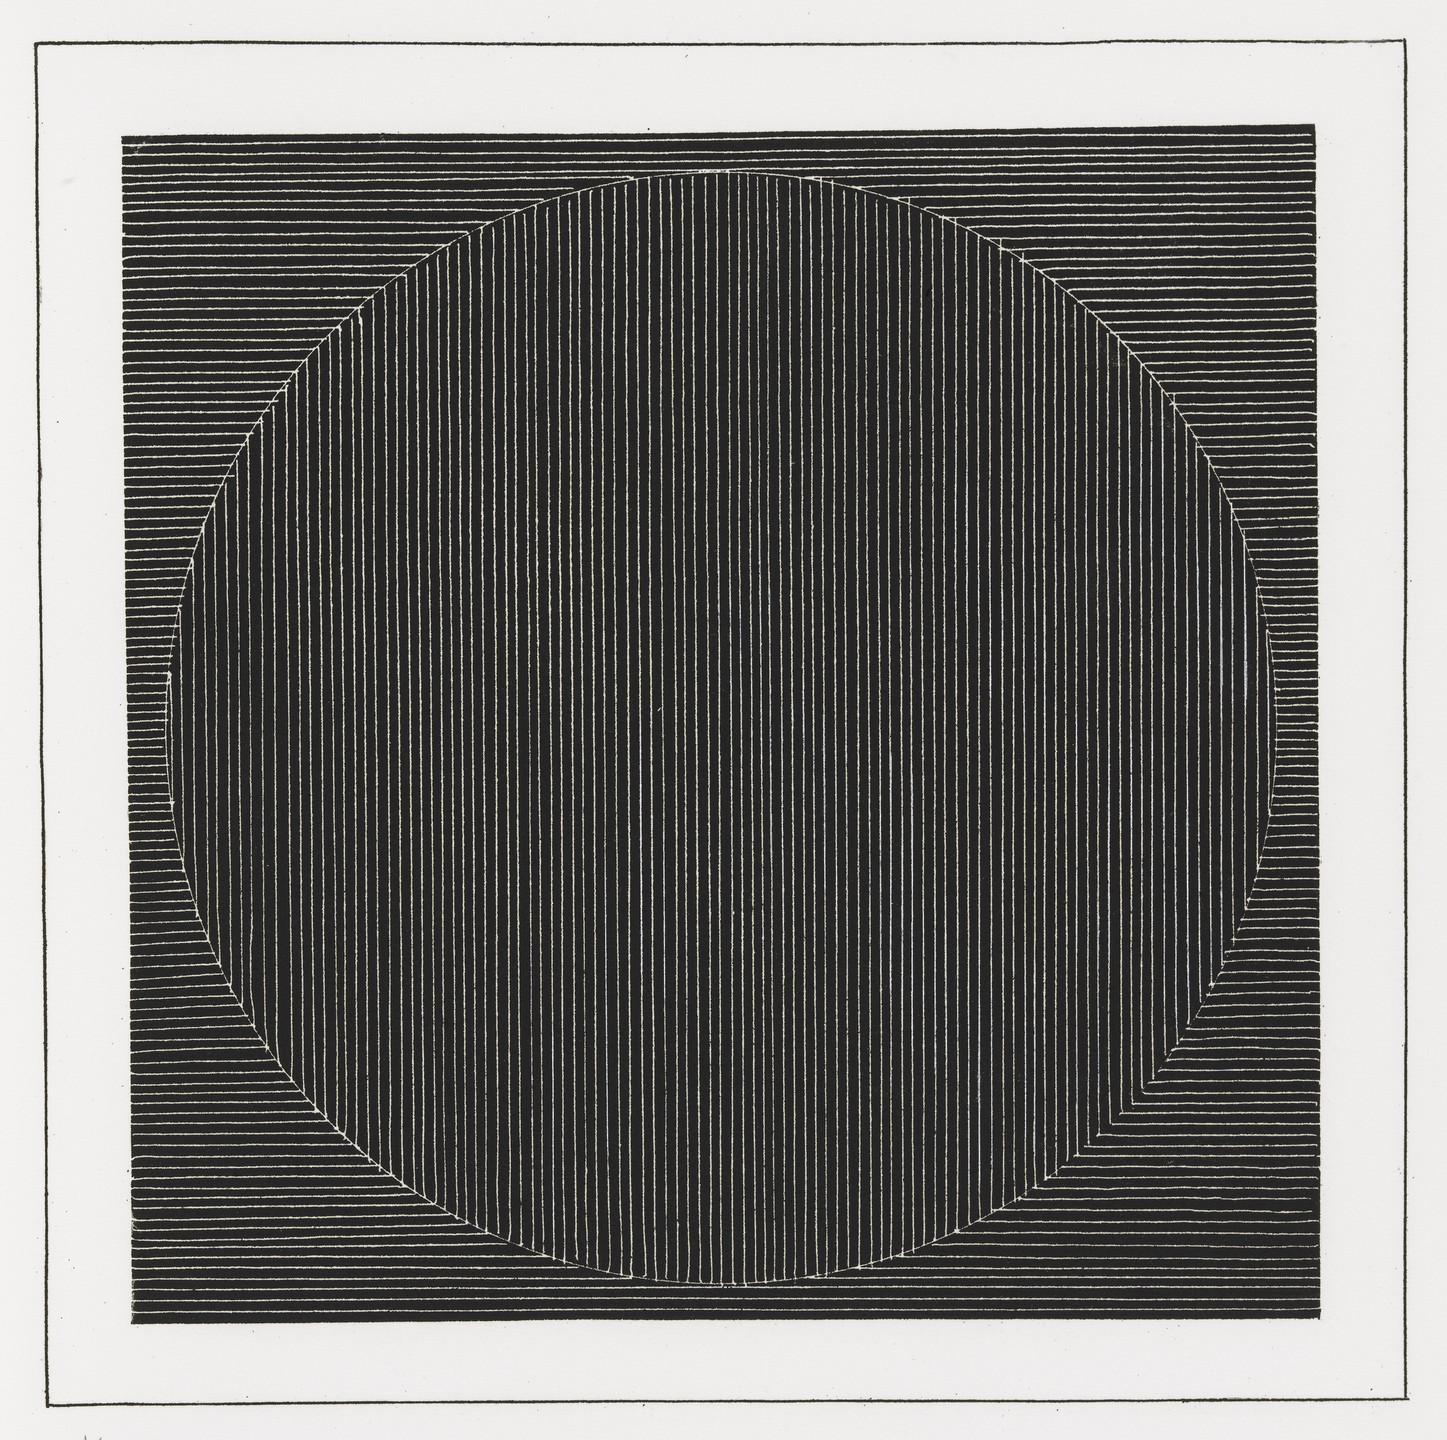 Sol LeWitt. Plate (folio 3) from Six Geometric Figures and All Their Combinations, Volume I. 1980